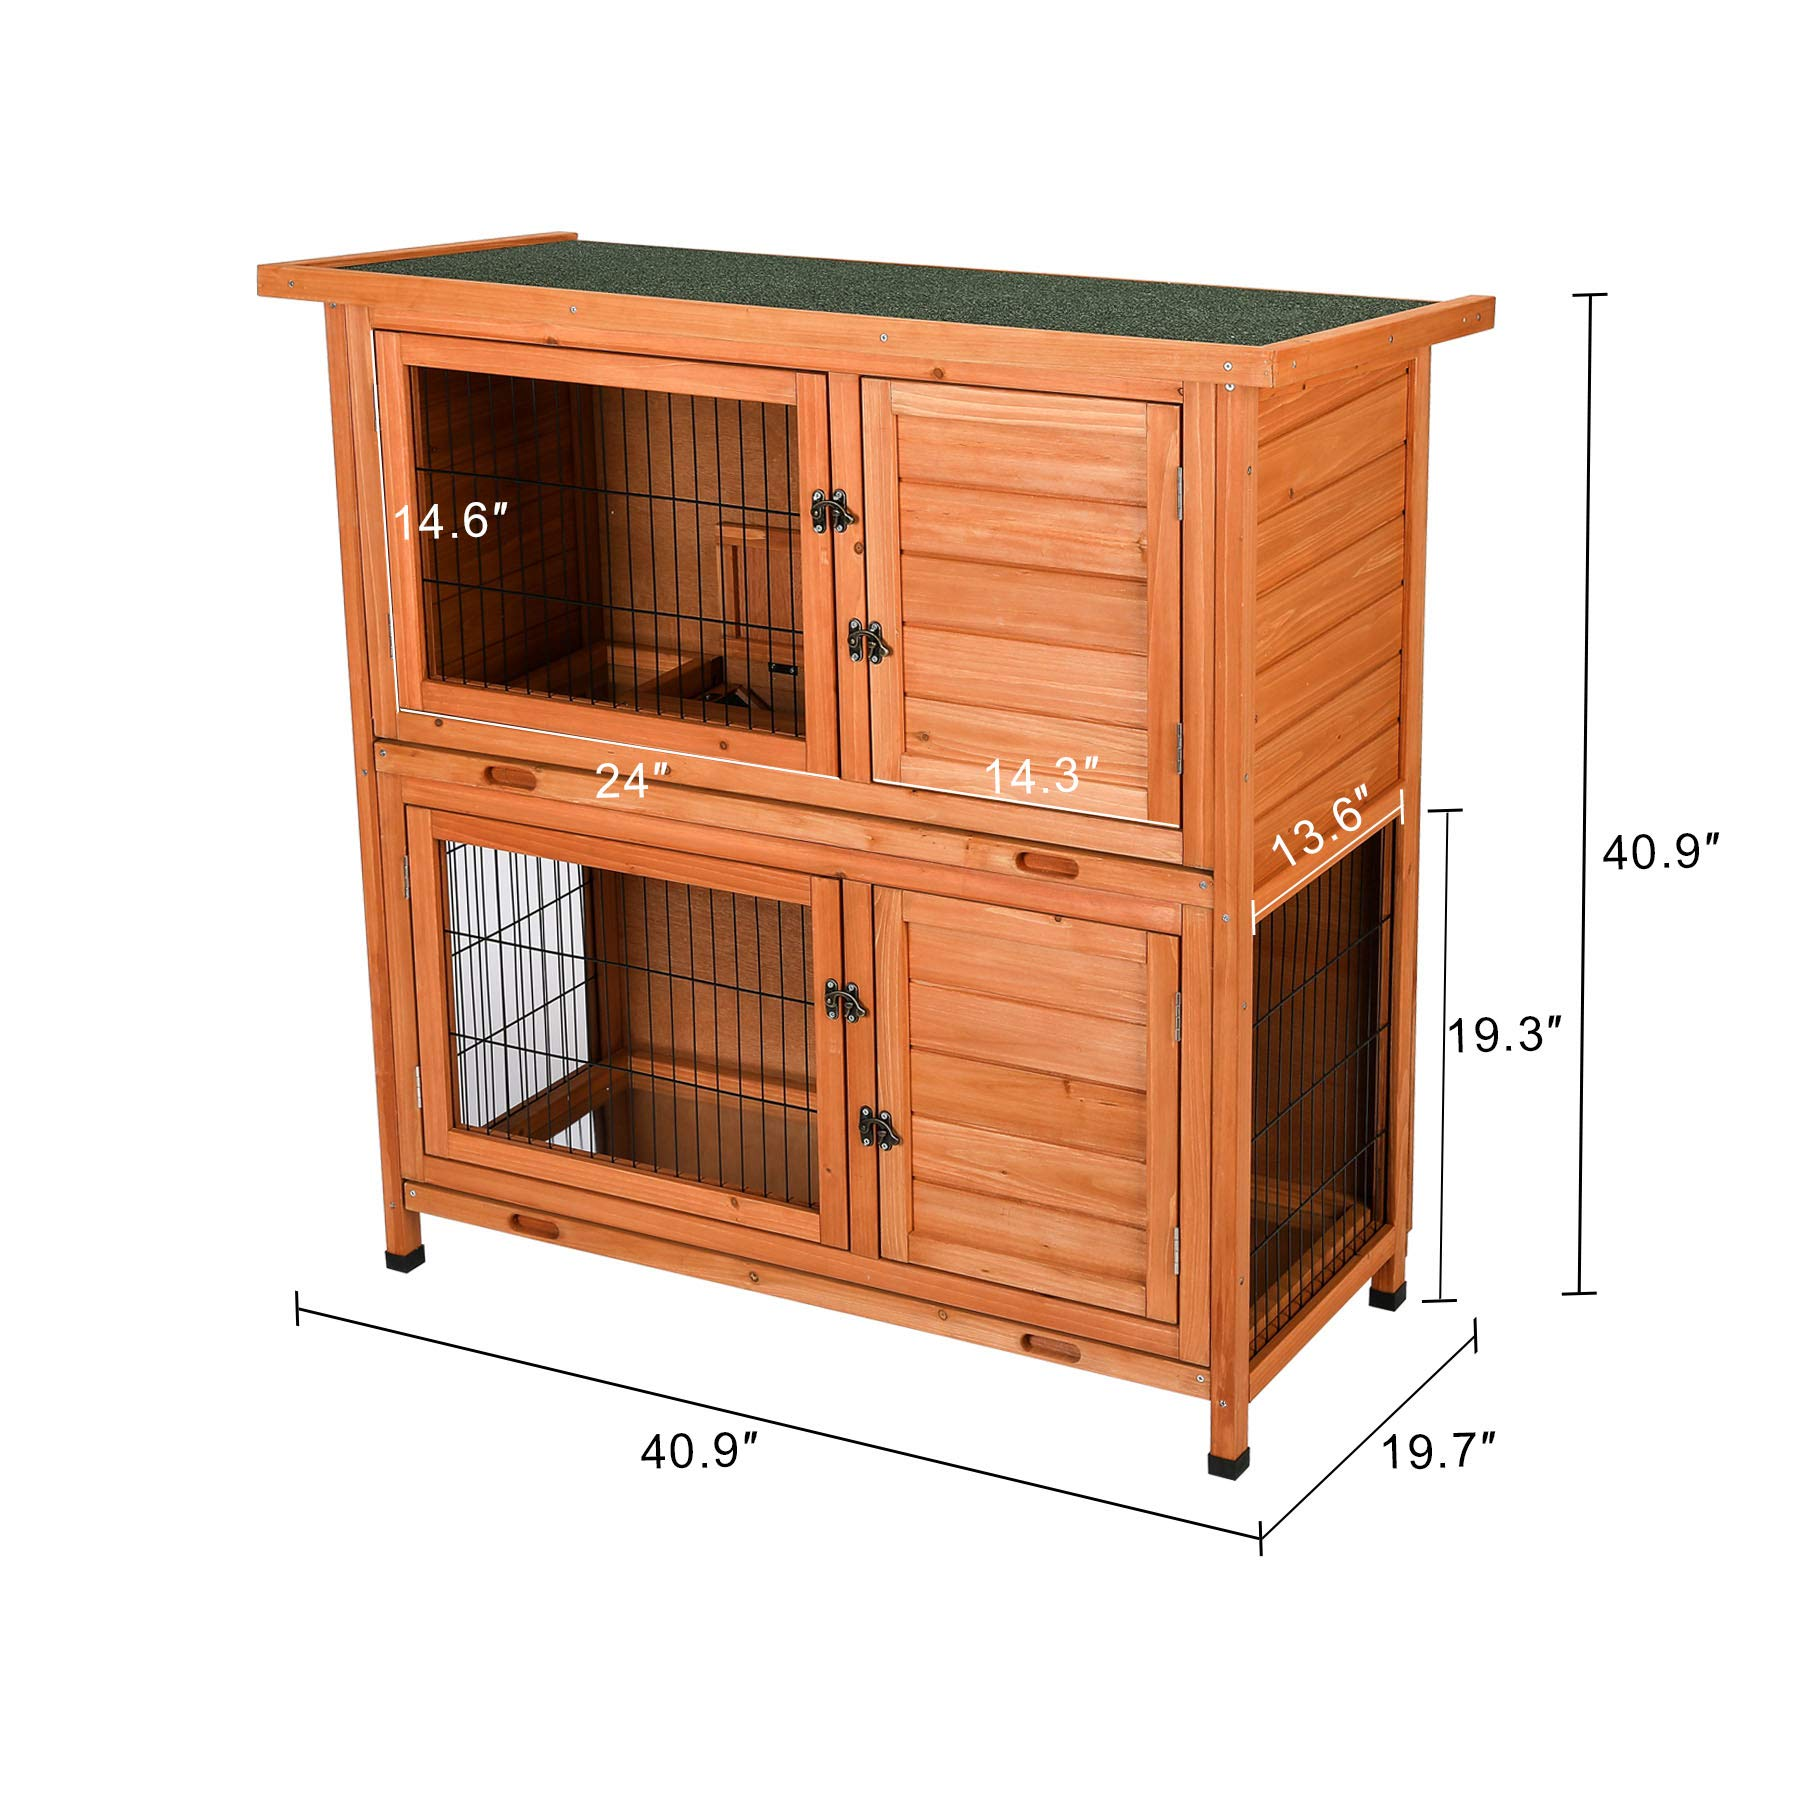 CO-Z 2 Story Outdoor Wooden Bunny Cage Rabbit Hutch Guinea Pig House in Nature Color with Ladder for Small Animals by CO-Z (Image #4)